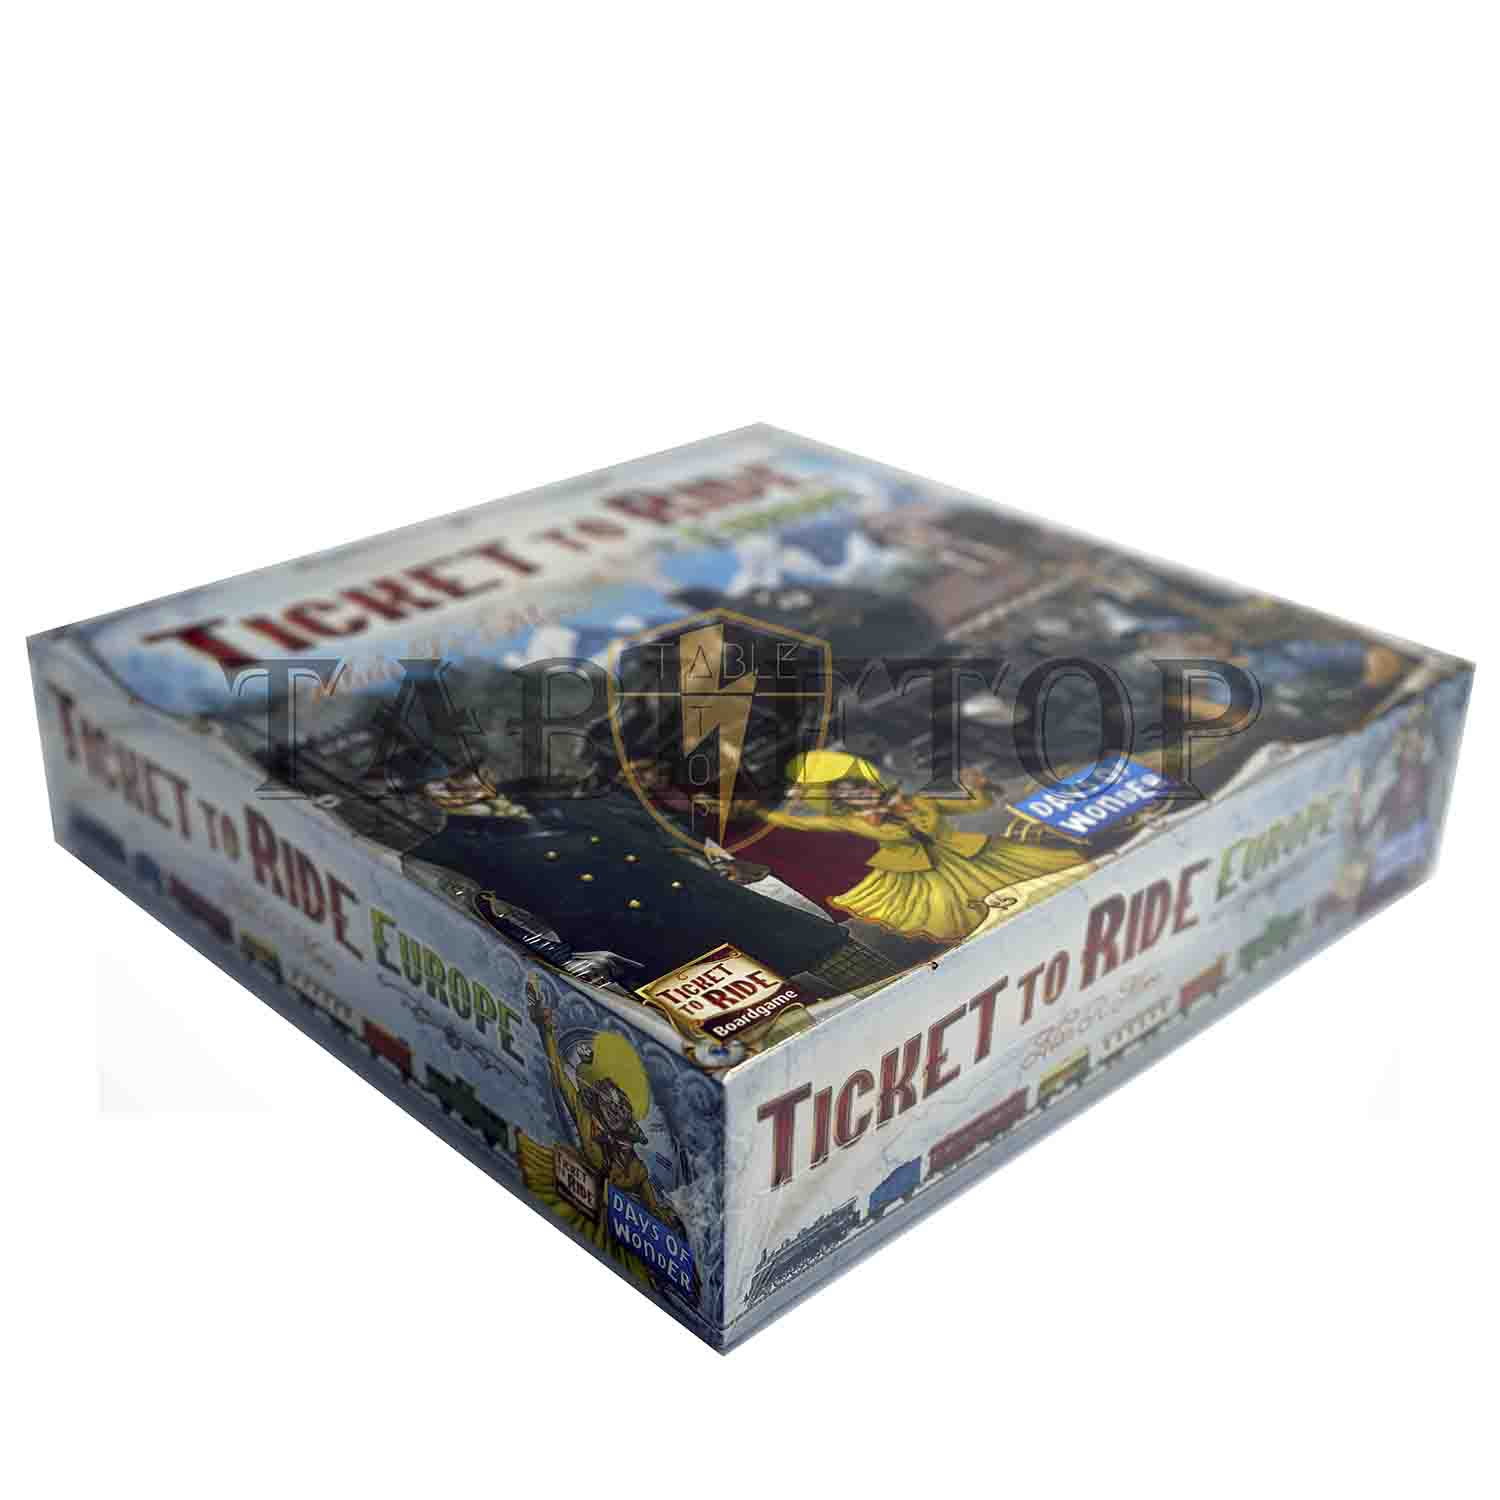 ticket to ride europe board game how to play